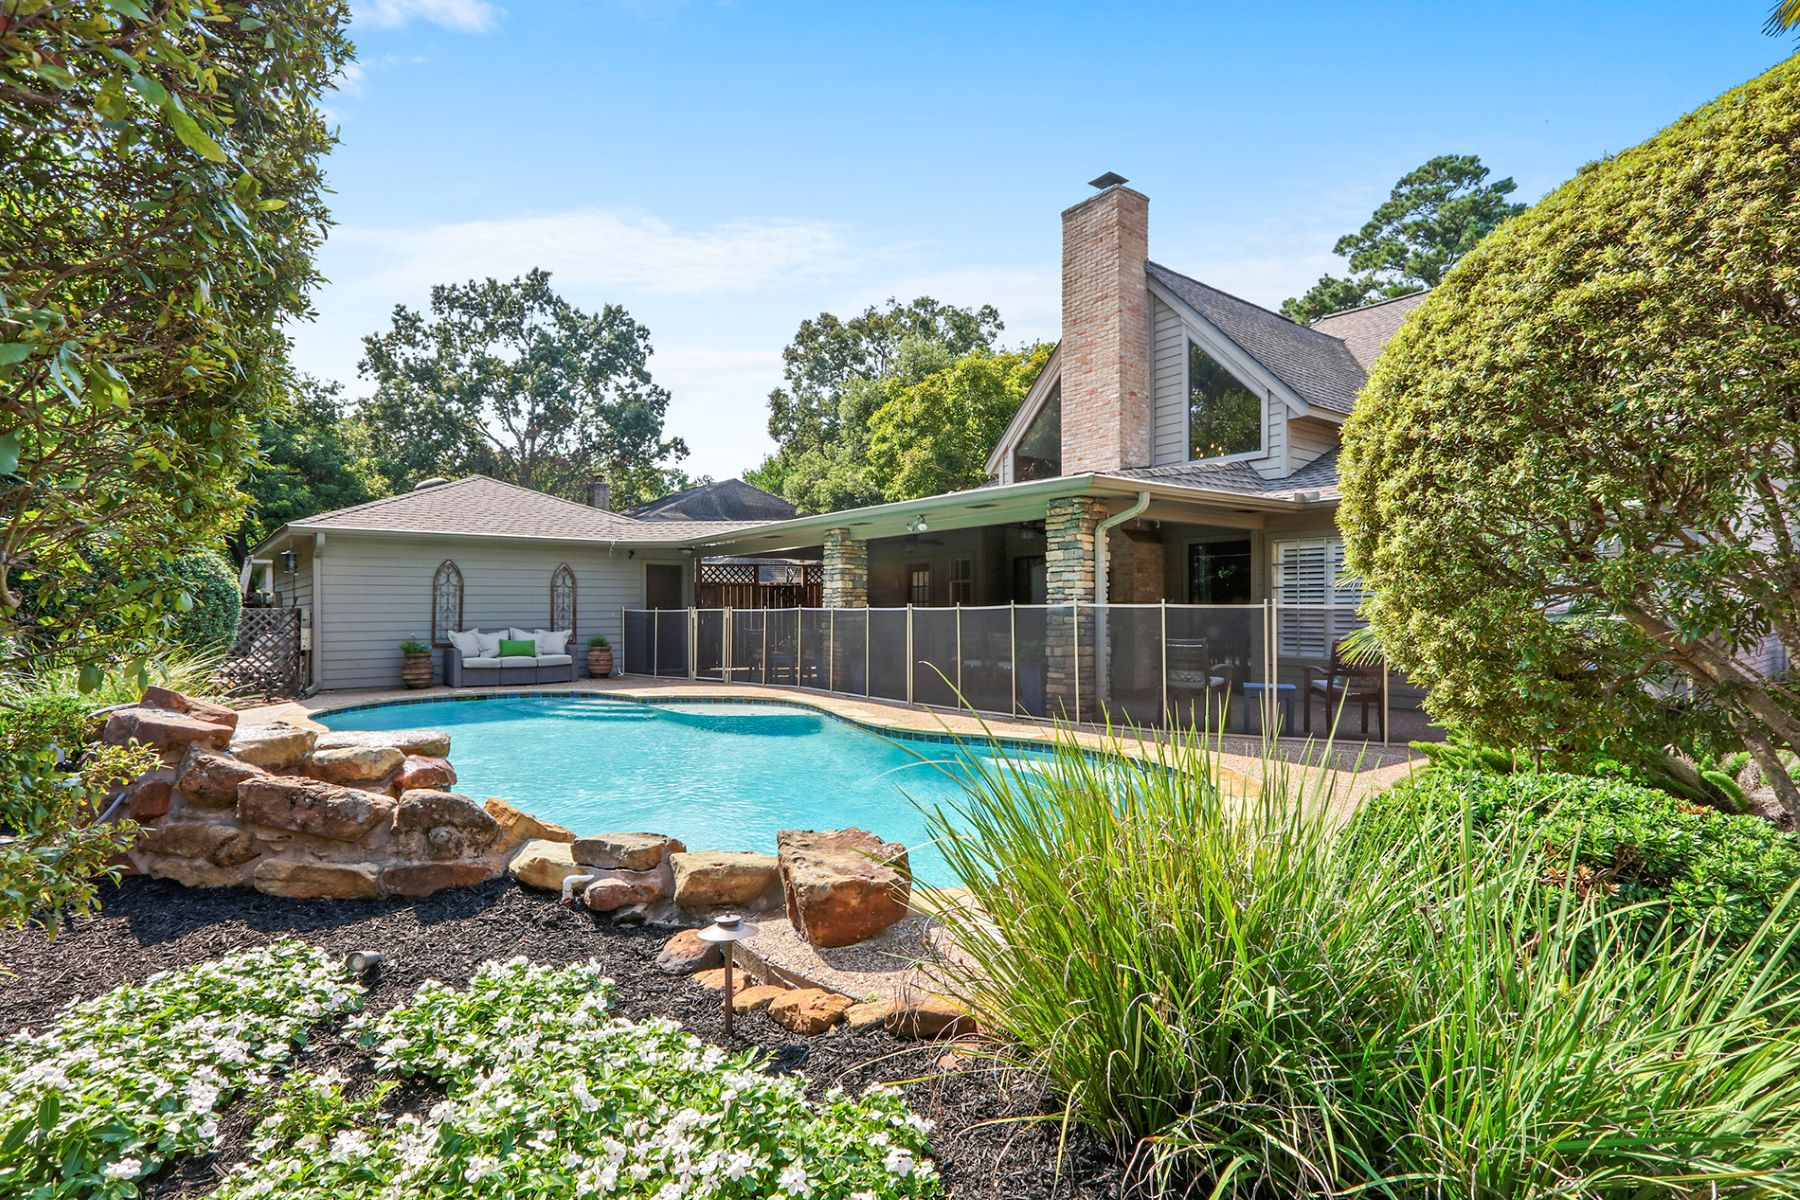 Single Family Homes for Sale at 3414 Sycamore Shadows Drive Kingwood, Texas 77339 United States